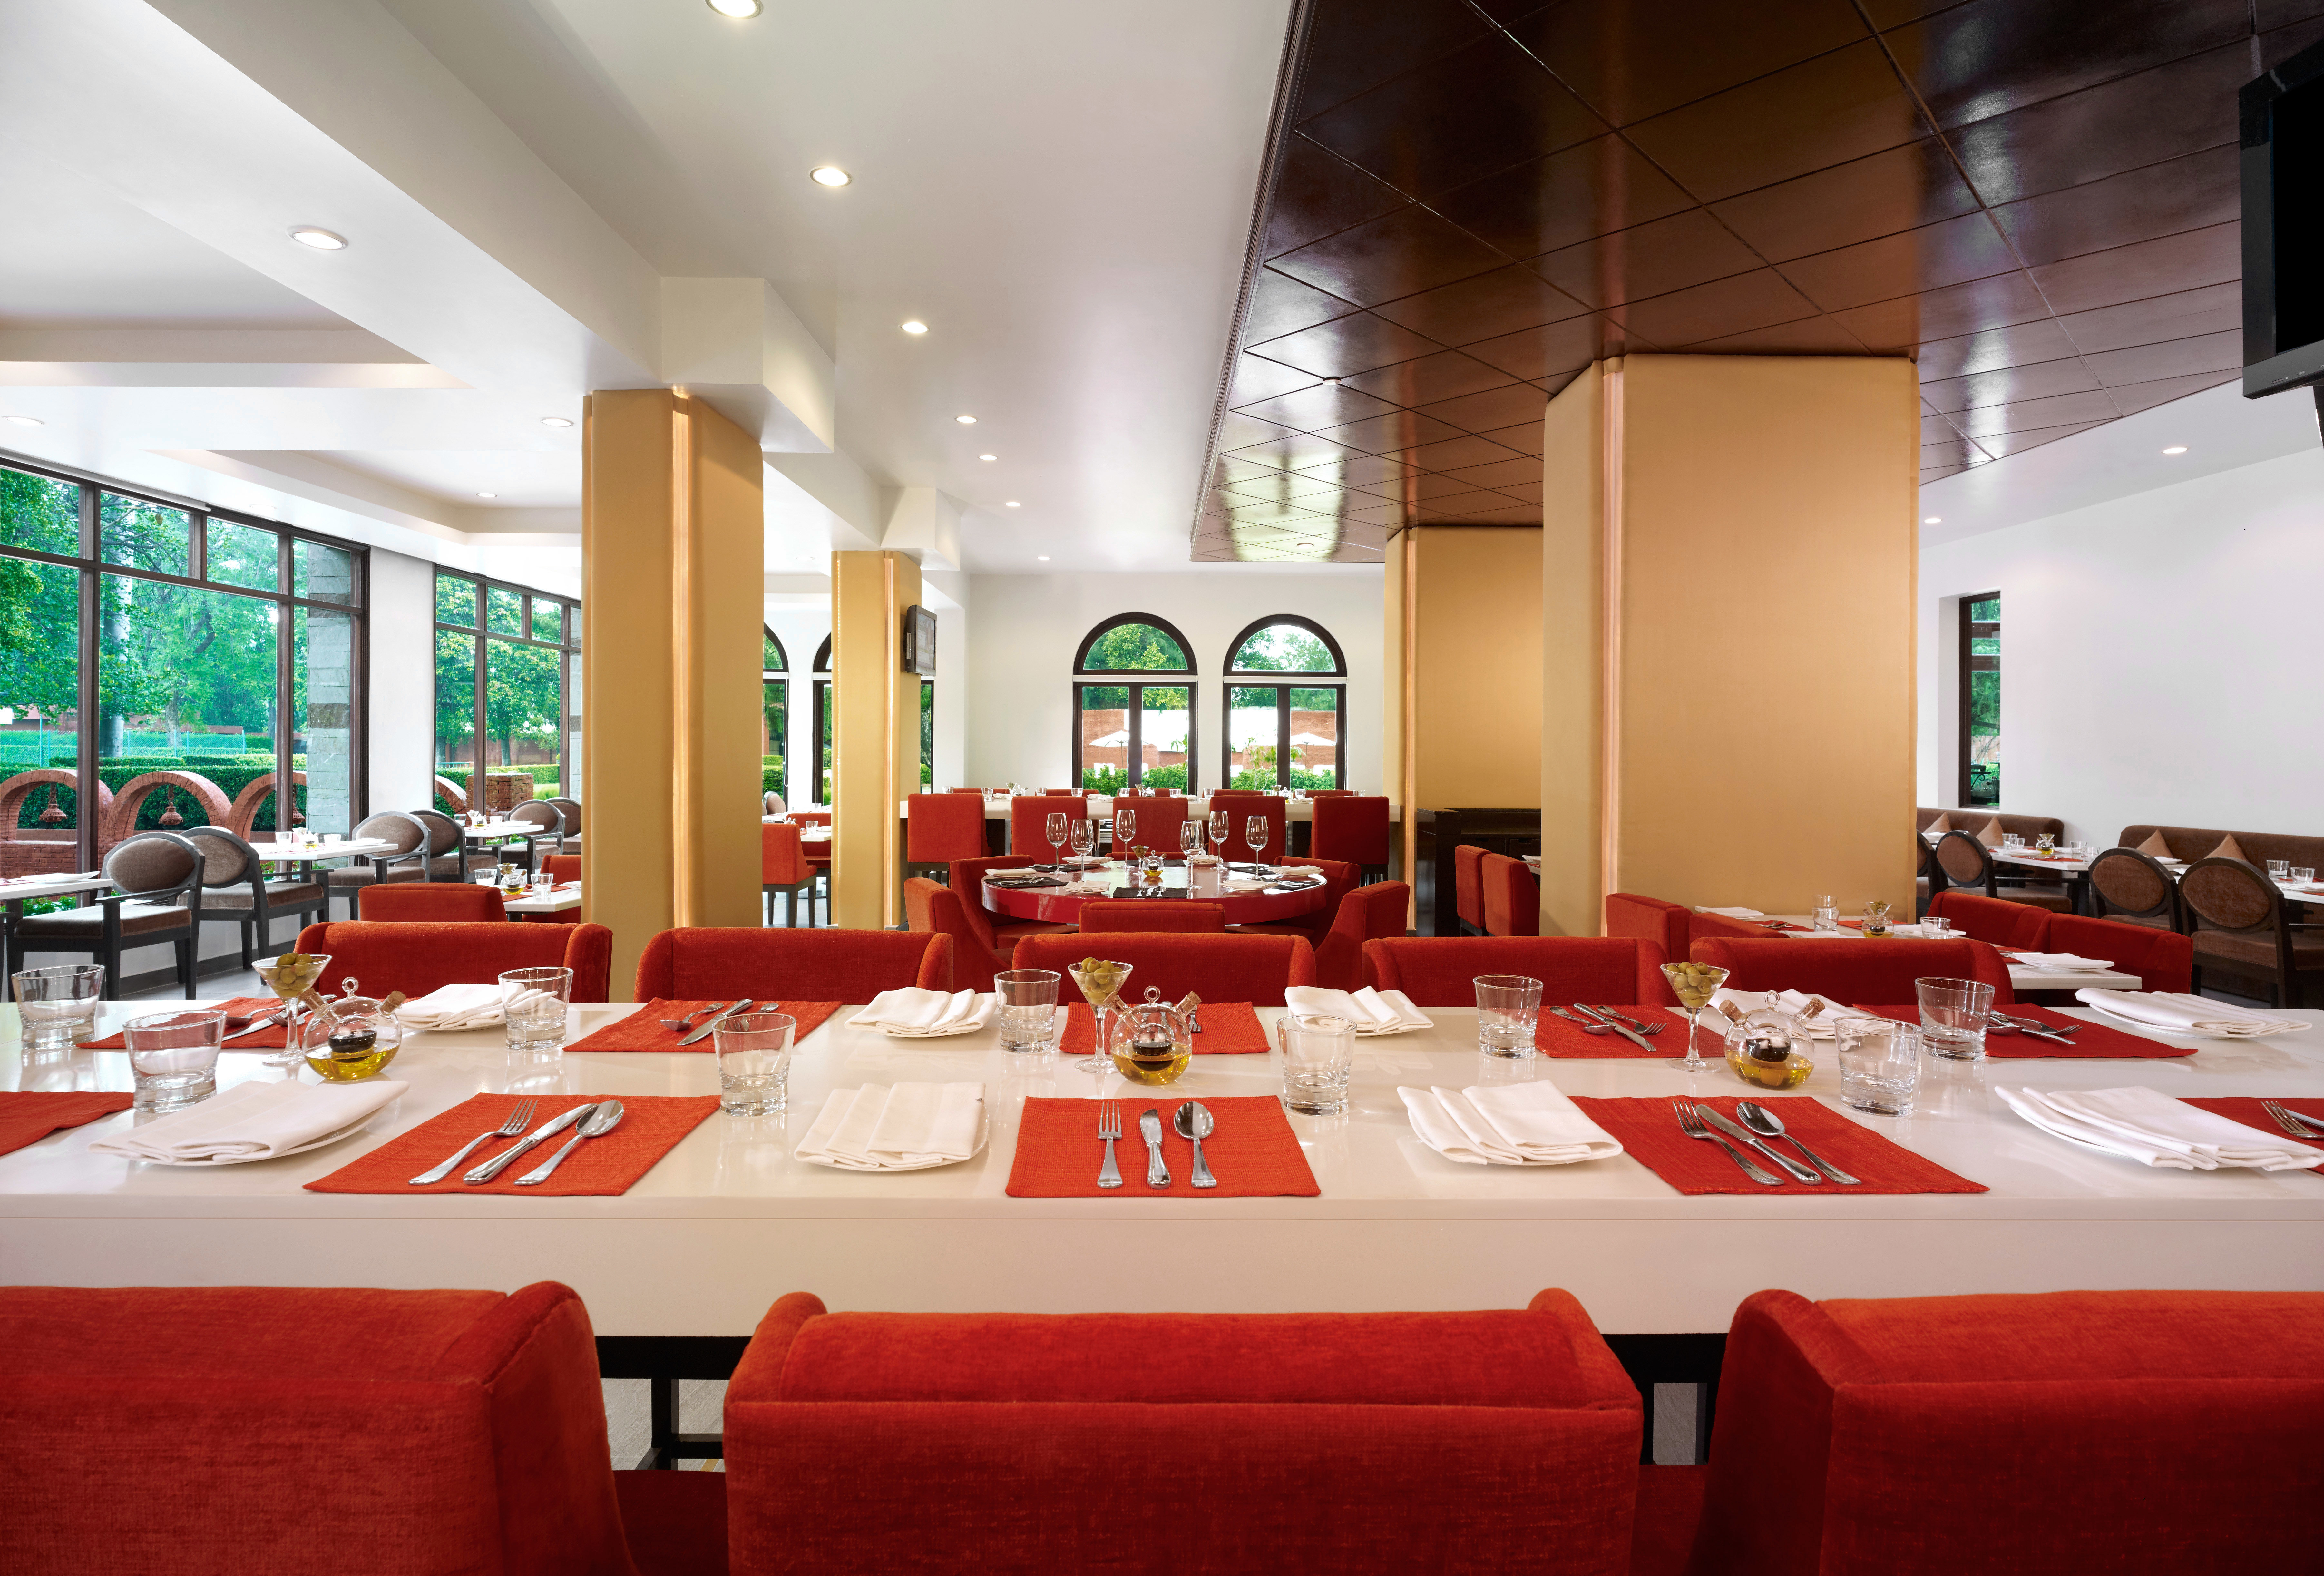 Dining Drink Eat function hall red conference hall restaurant convention center ballroom dining table